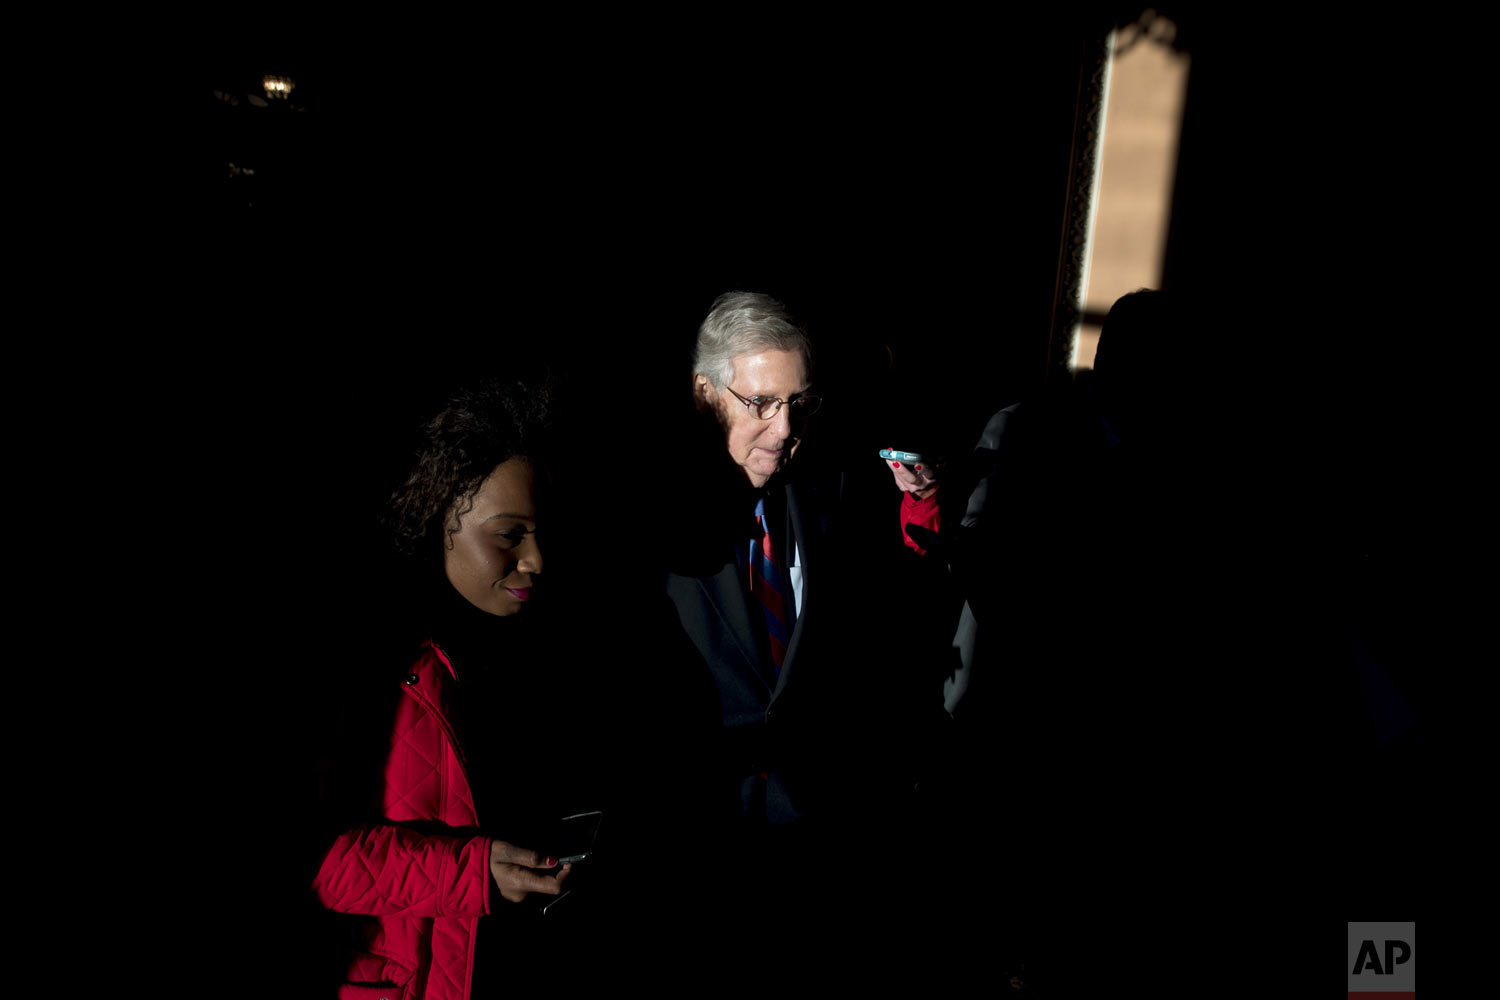 Senate Majority Leader Mitch McConnell, R-Ky., walks out of the Senate Chamber after passing a continuing resolution to reopen the government, on Capitol Hill in Washington, on Friday, Jan. 25, 2019. (AP Photo/Andrew Harnik)